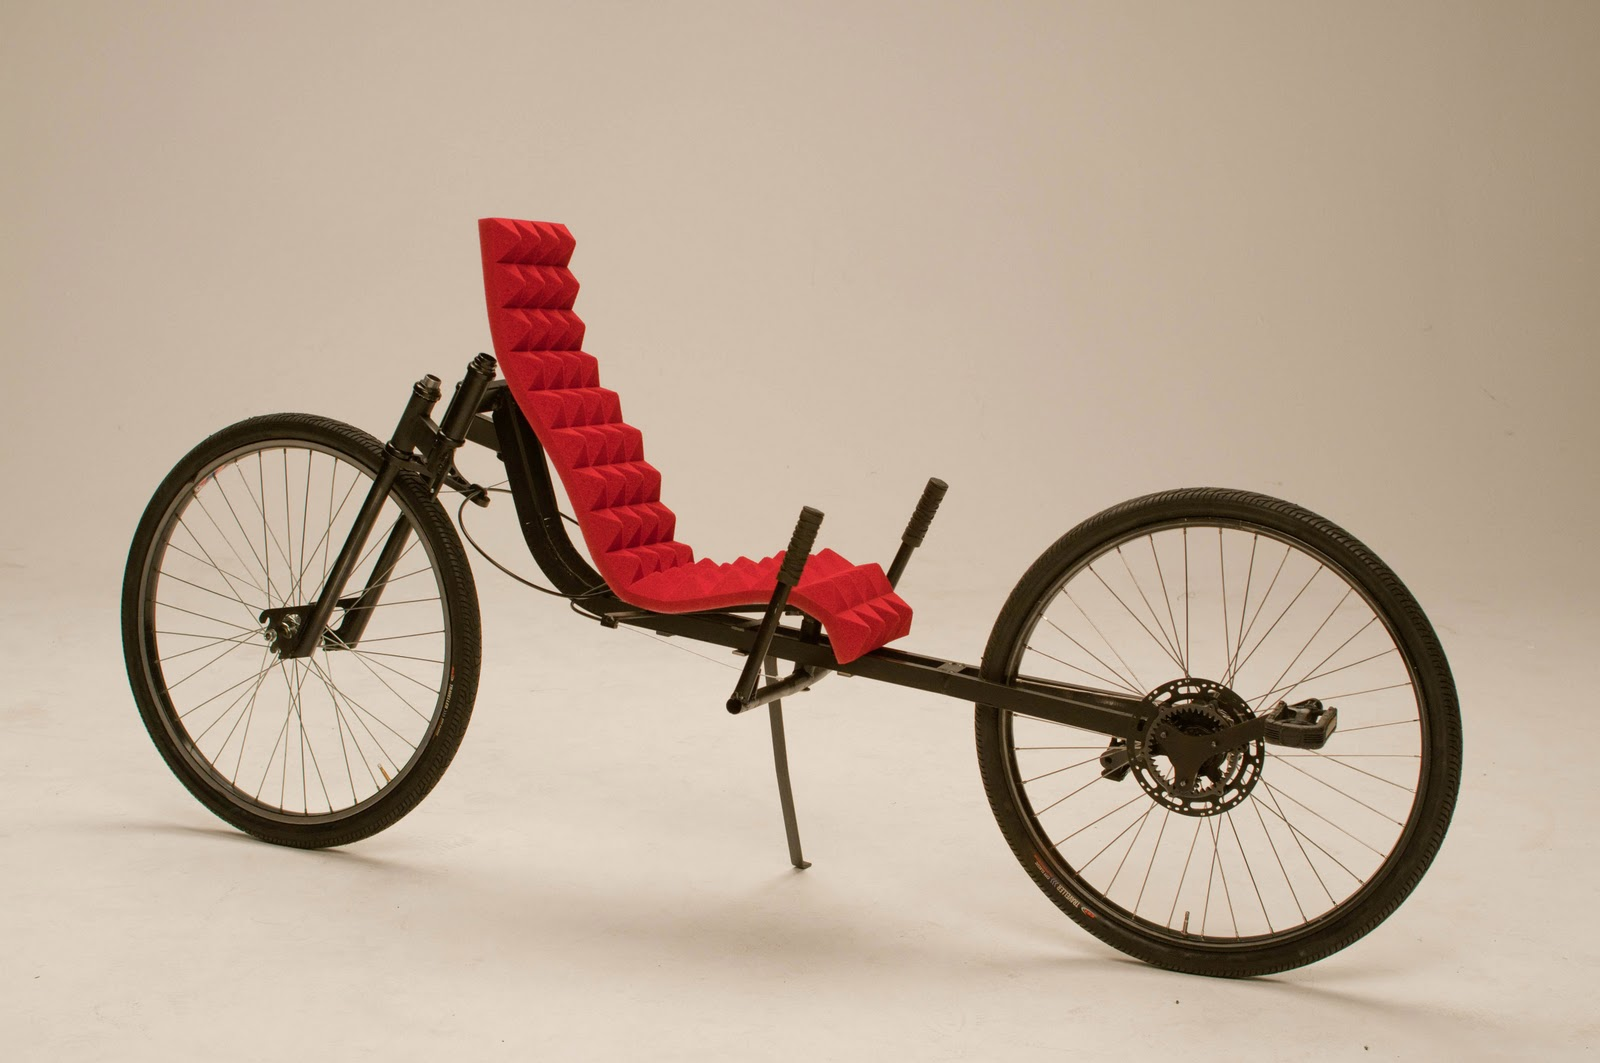 RWS recumbent bicycle | DESIGN TEMPTATION